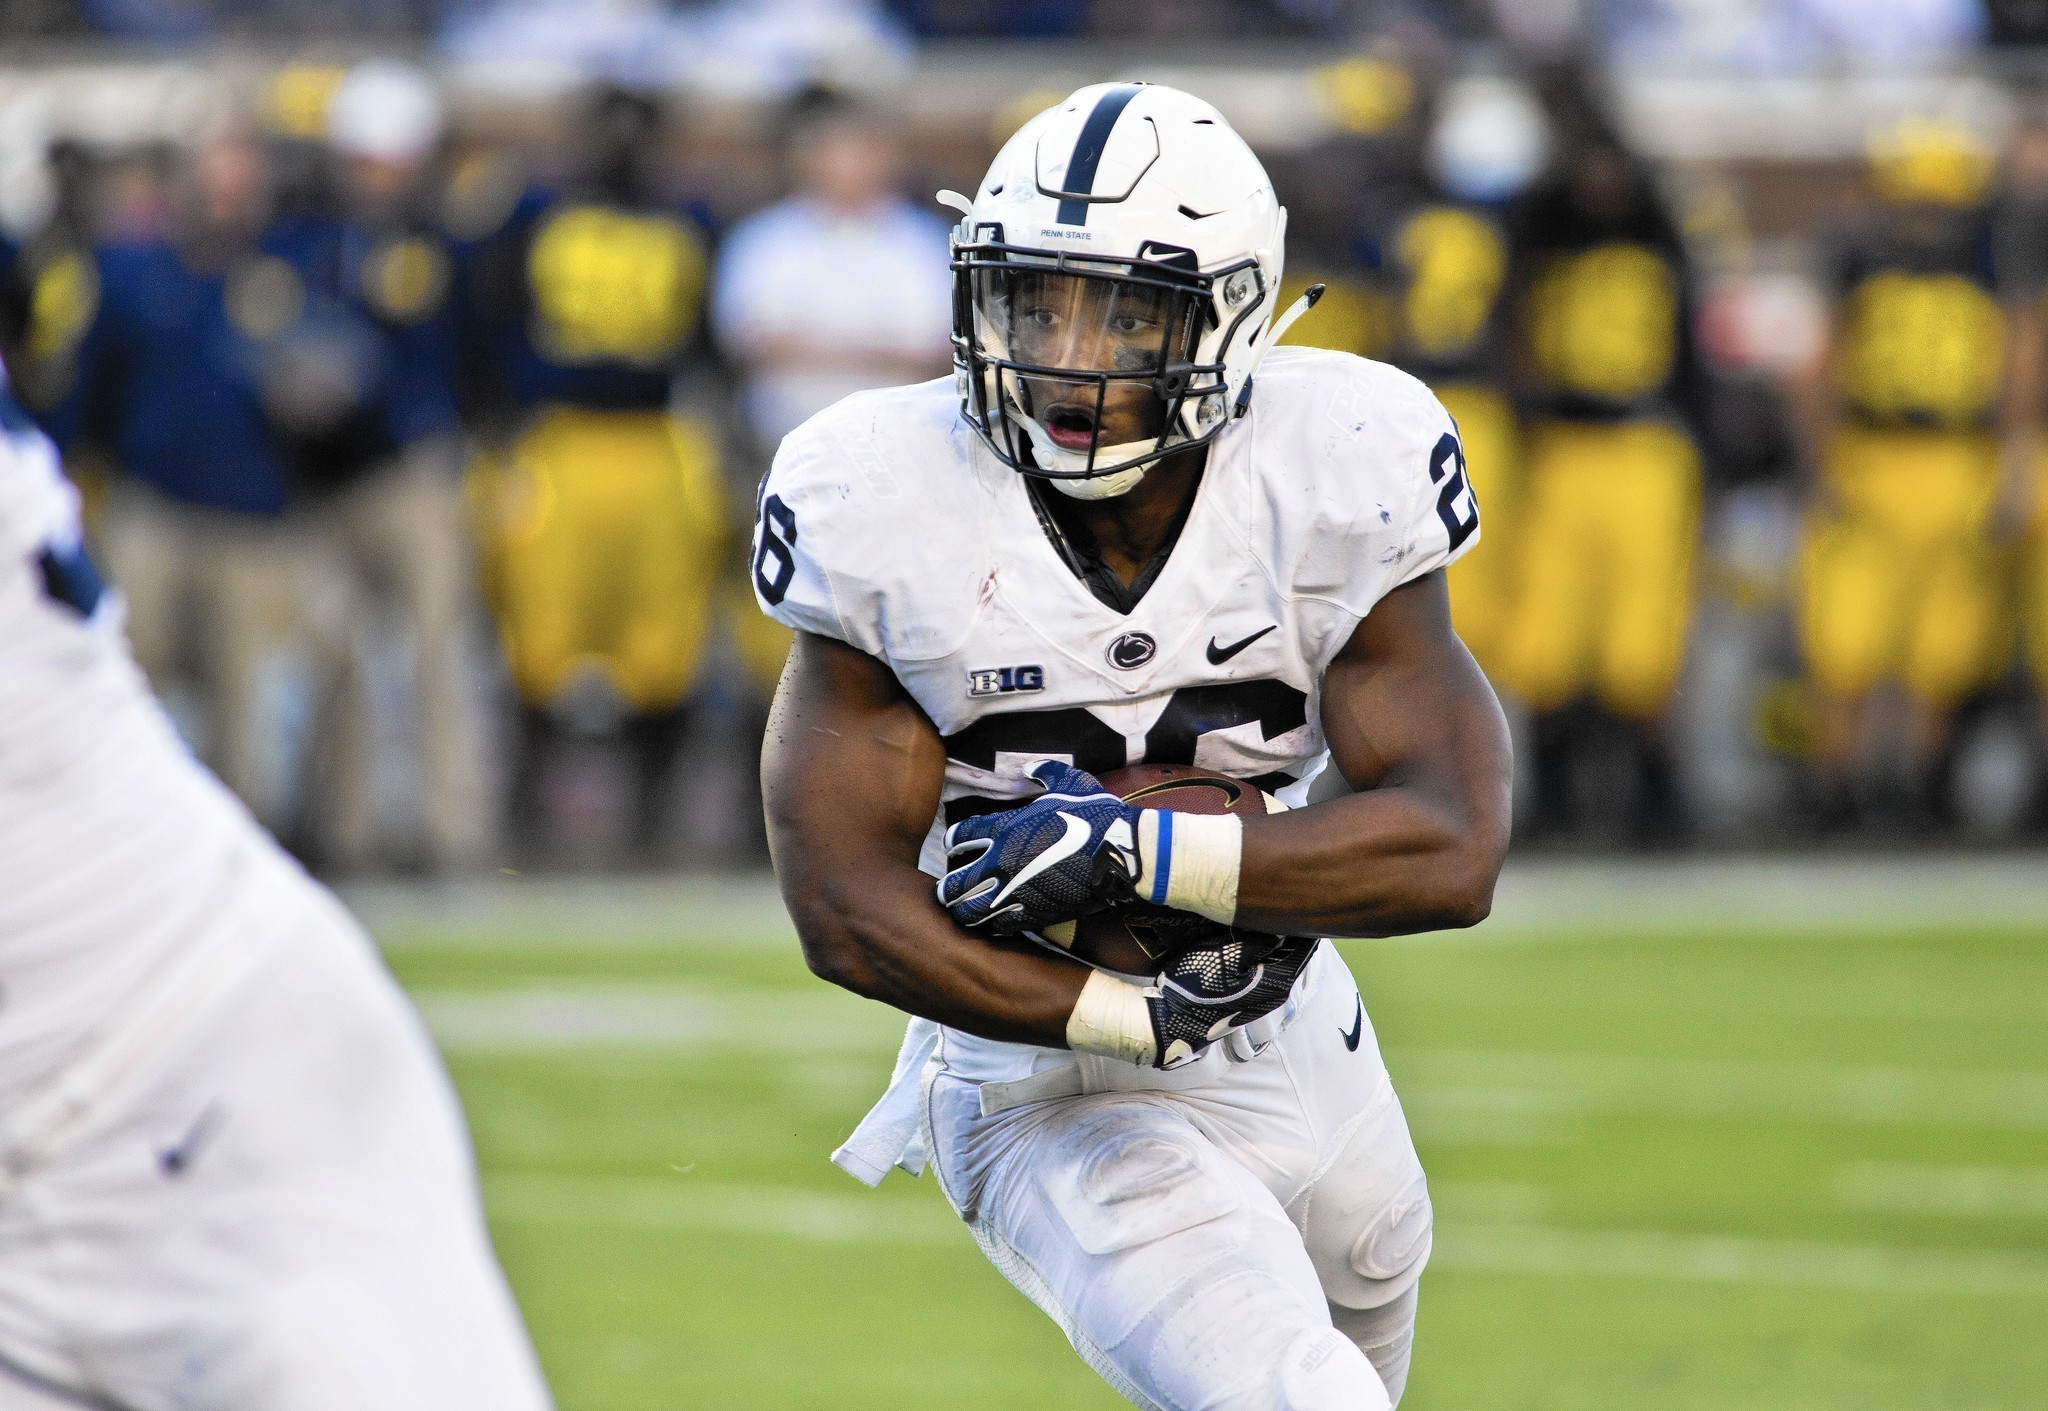 Mc-penn-state-football-minnesota-preview-20160930